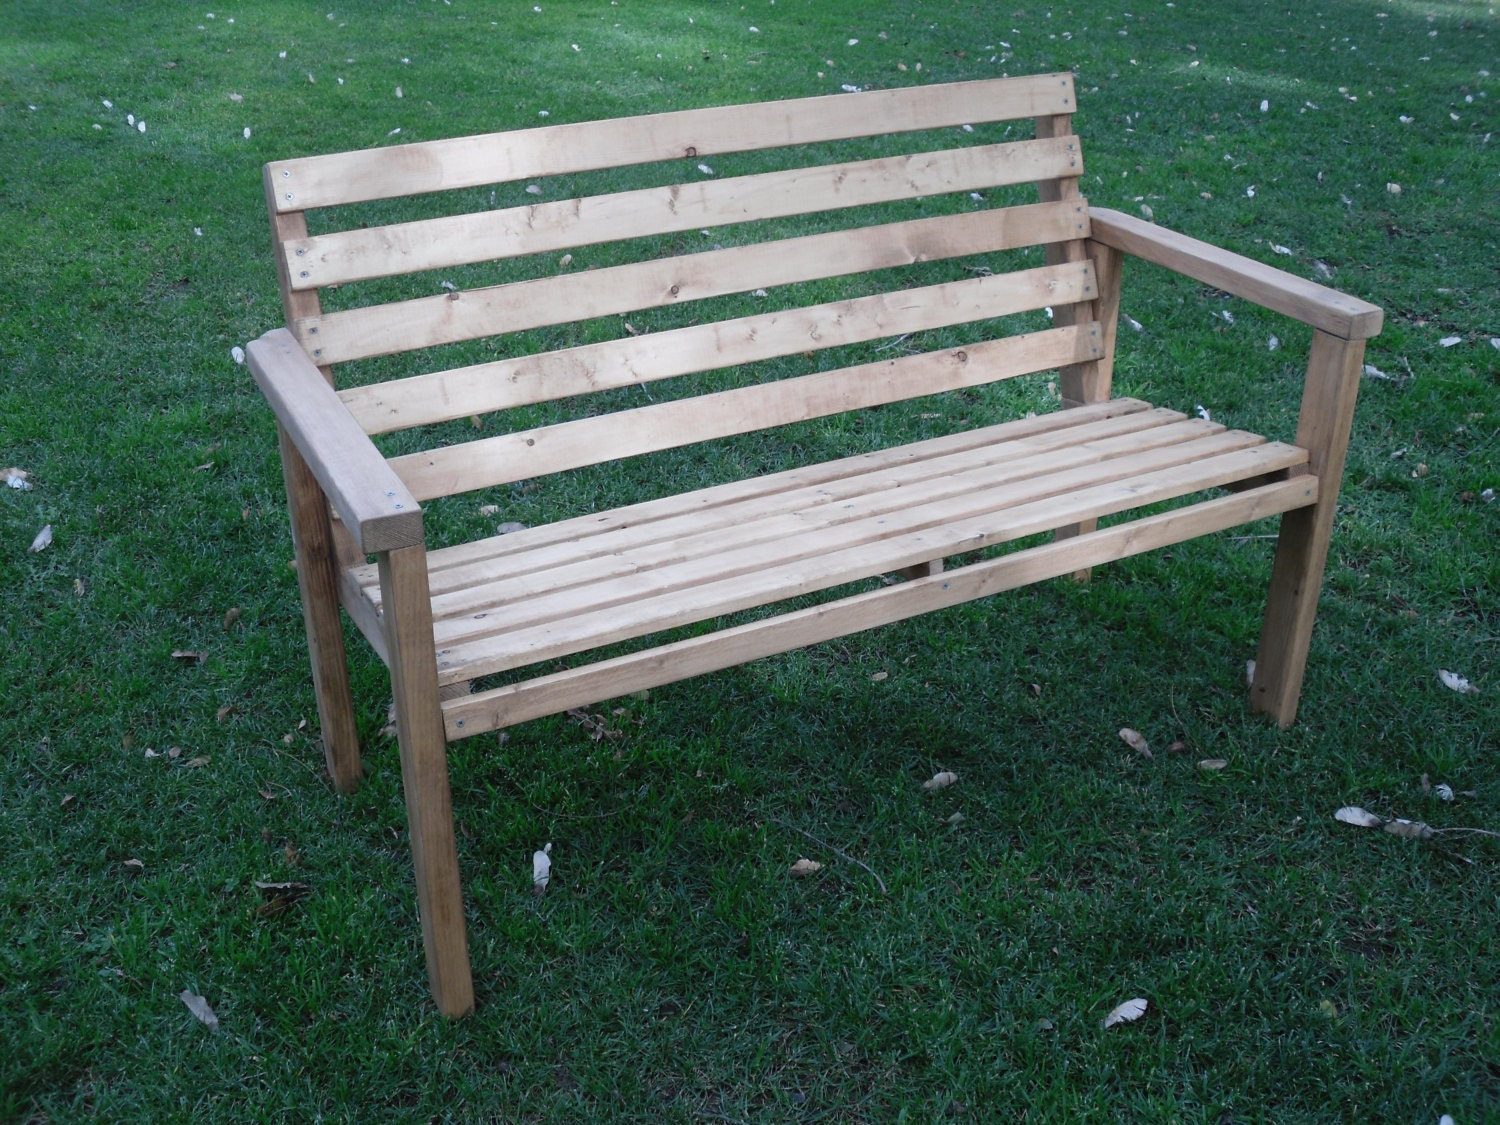 ... to make - Patio Bench - Outdoor Furniture for Patio Lawn or Garden